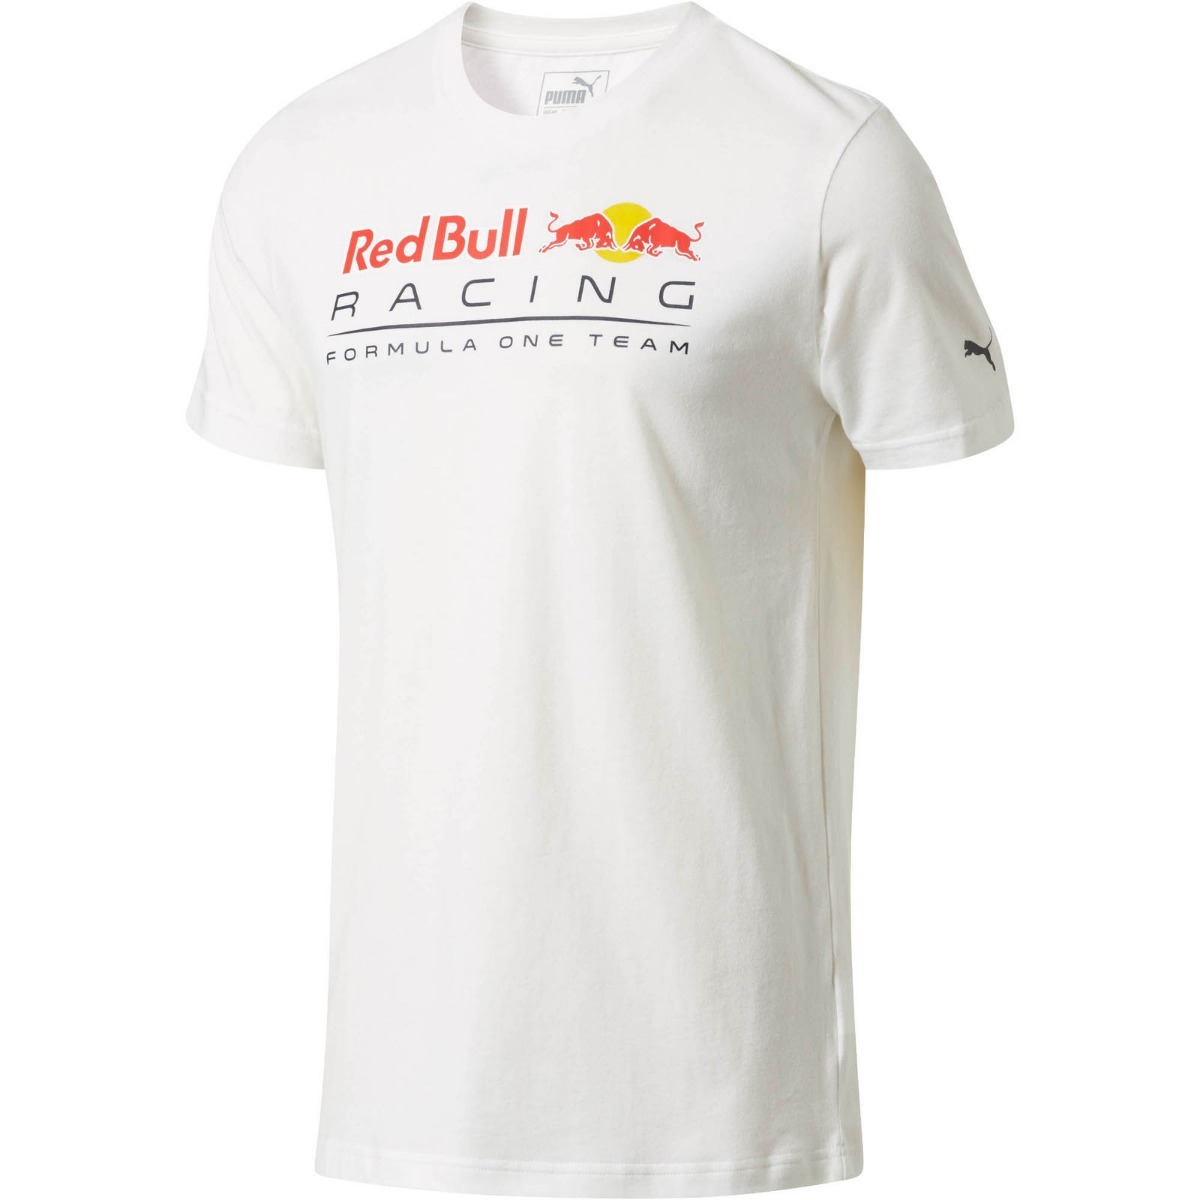 0ee3c7ec8ff30 camiseta puma red bull racing branca. Carregando zoom.